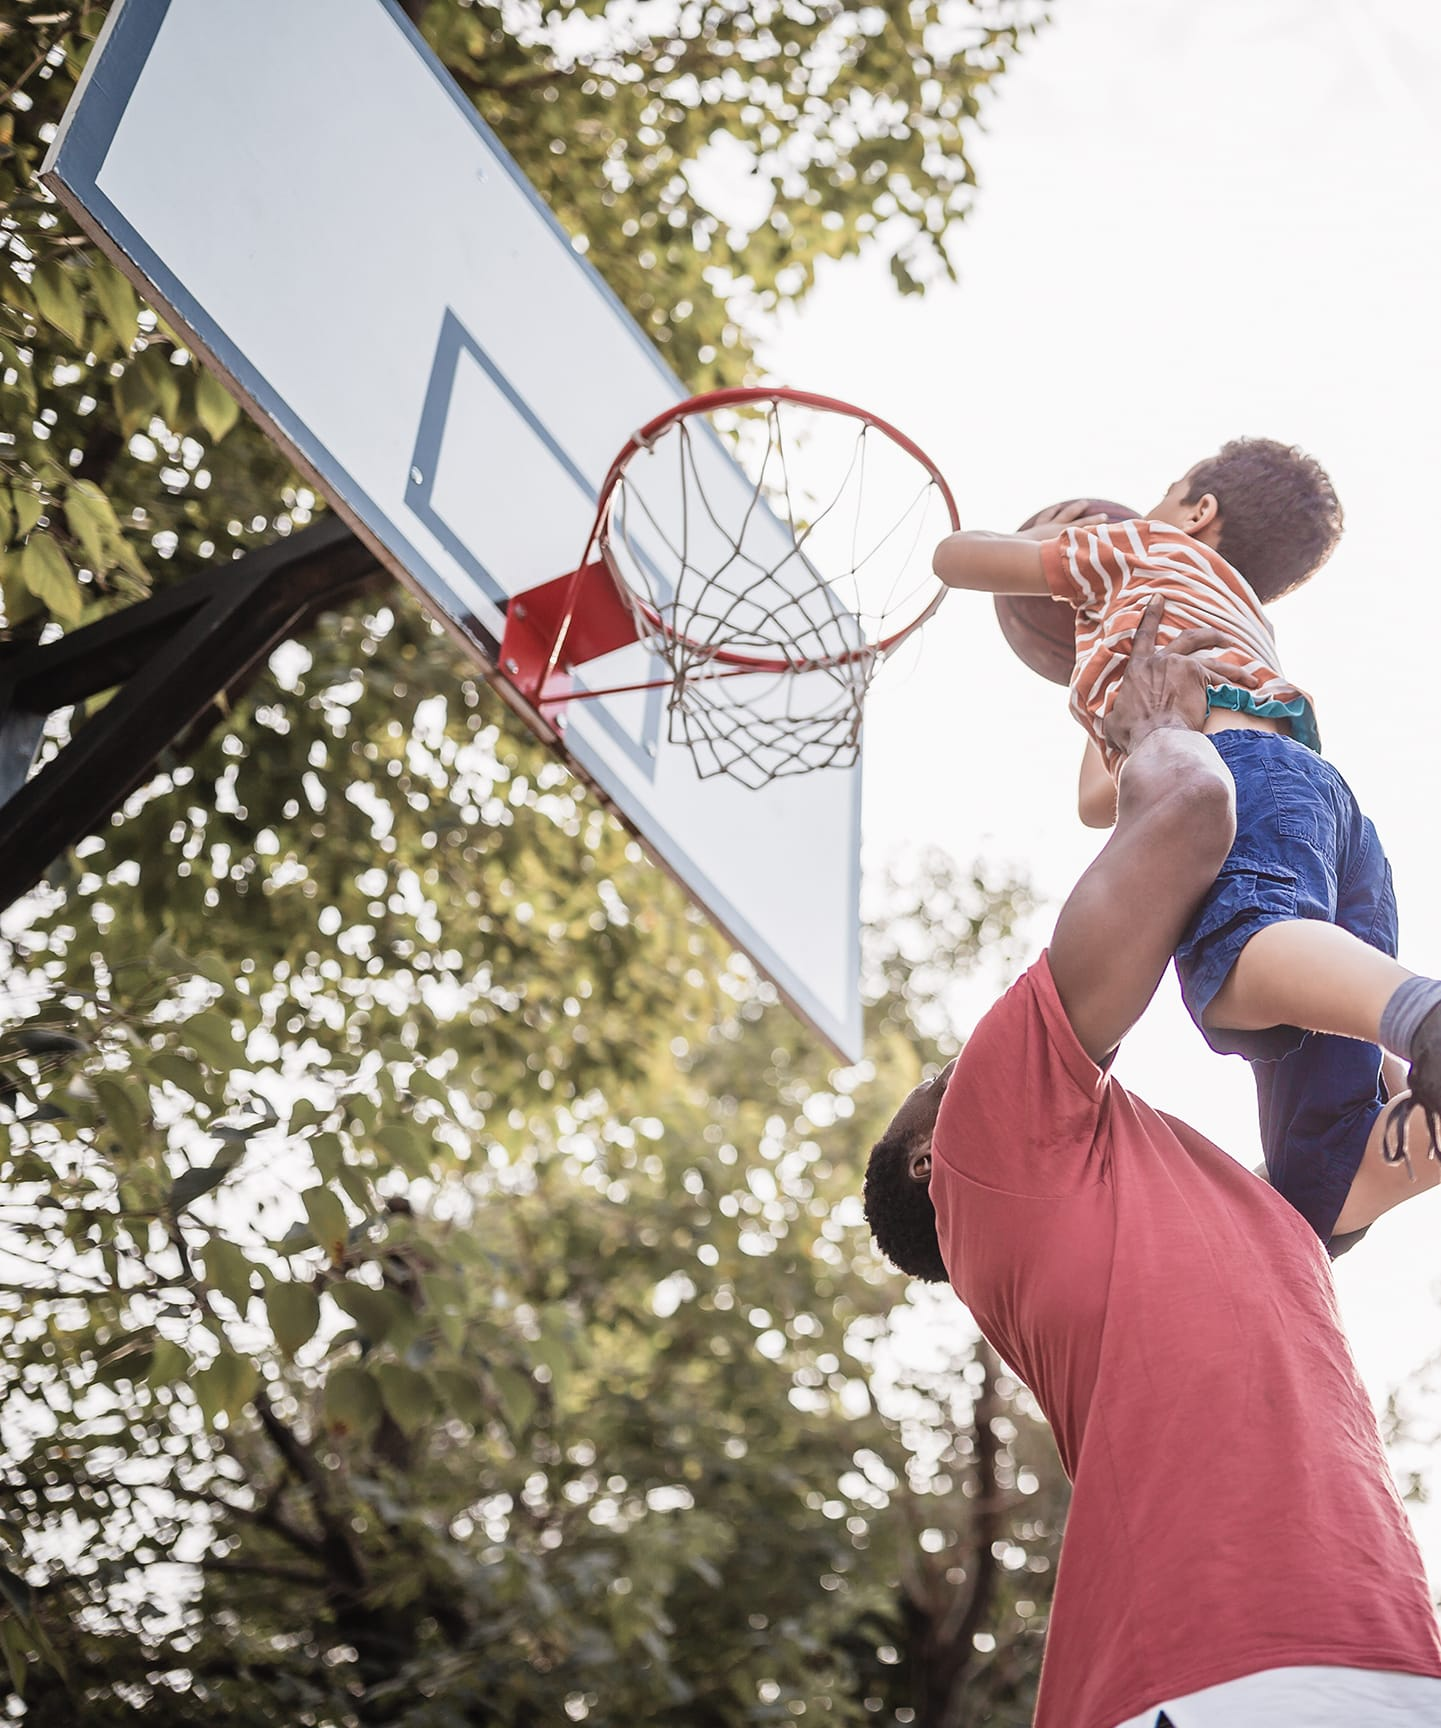 A father raises his young child up to the rim to slam dunk.